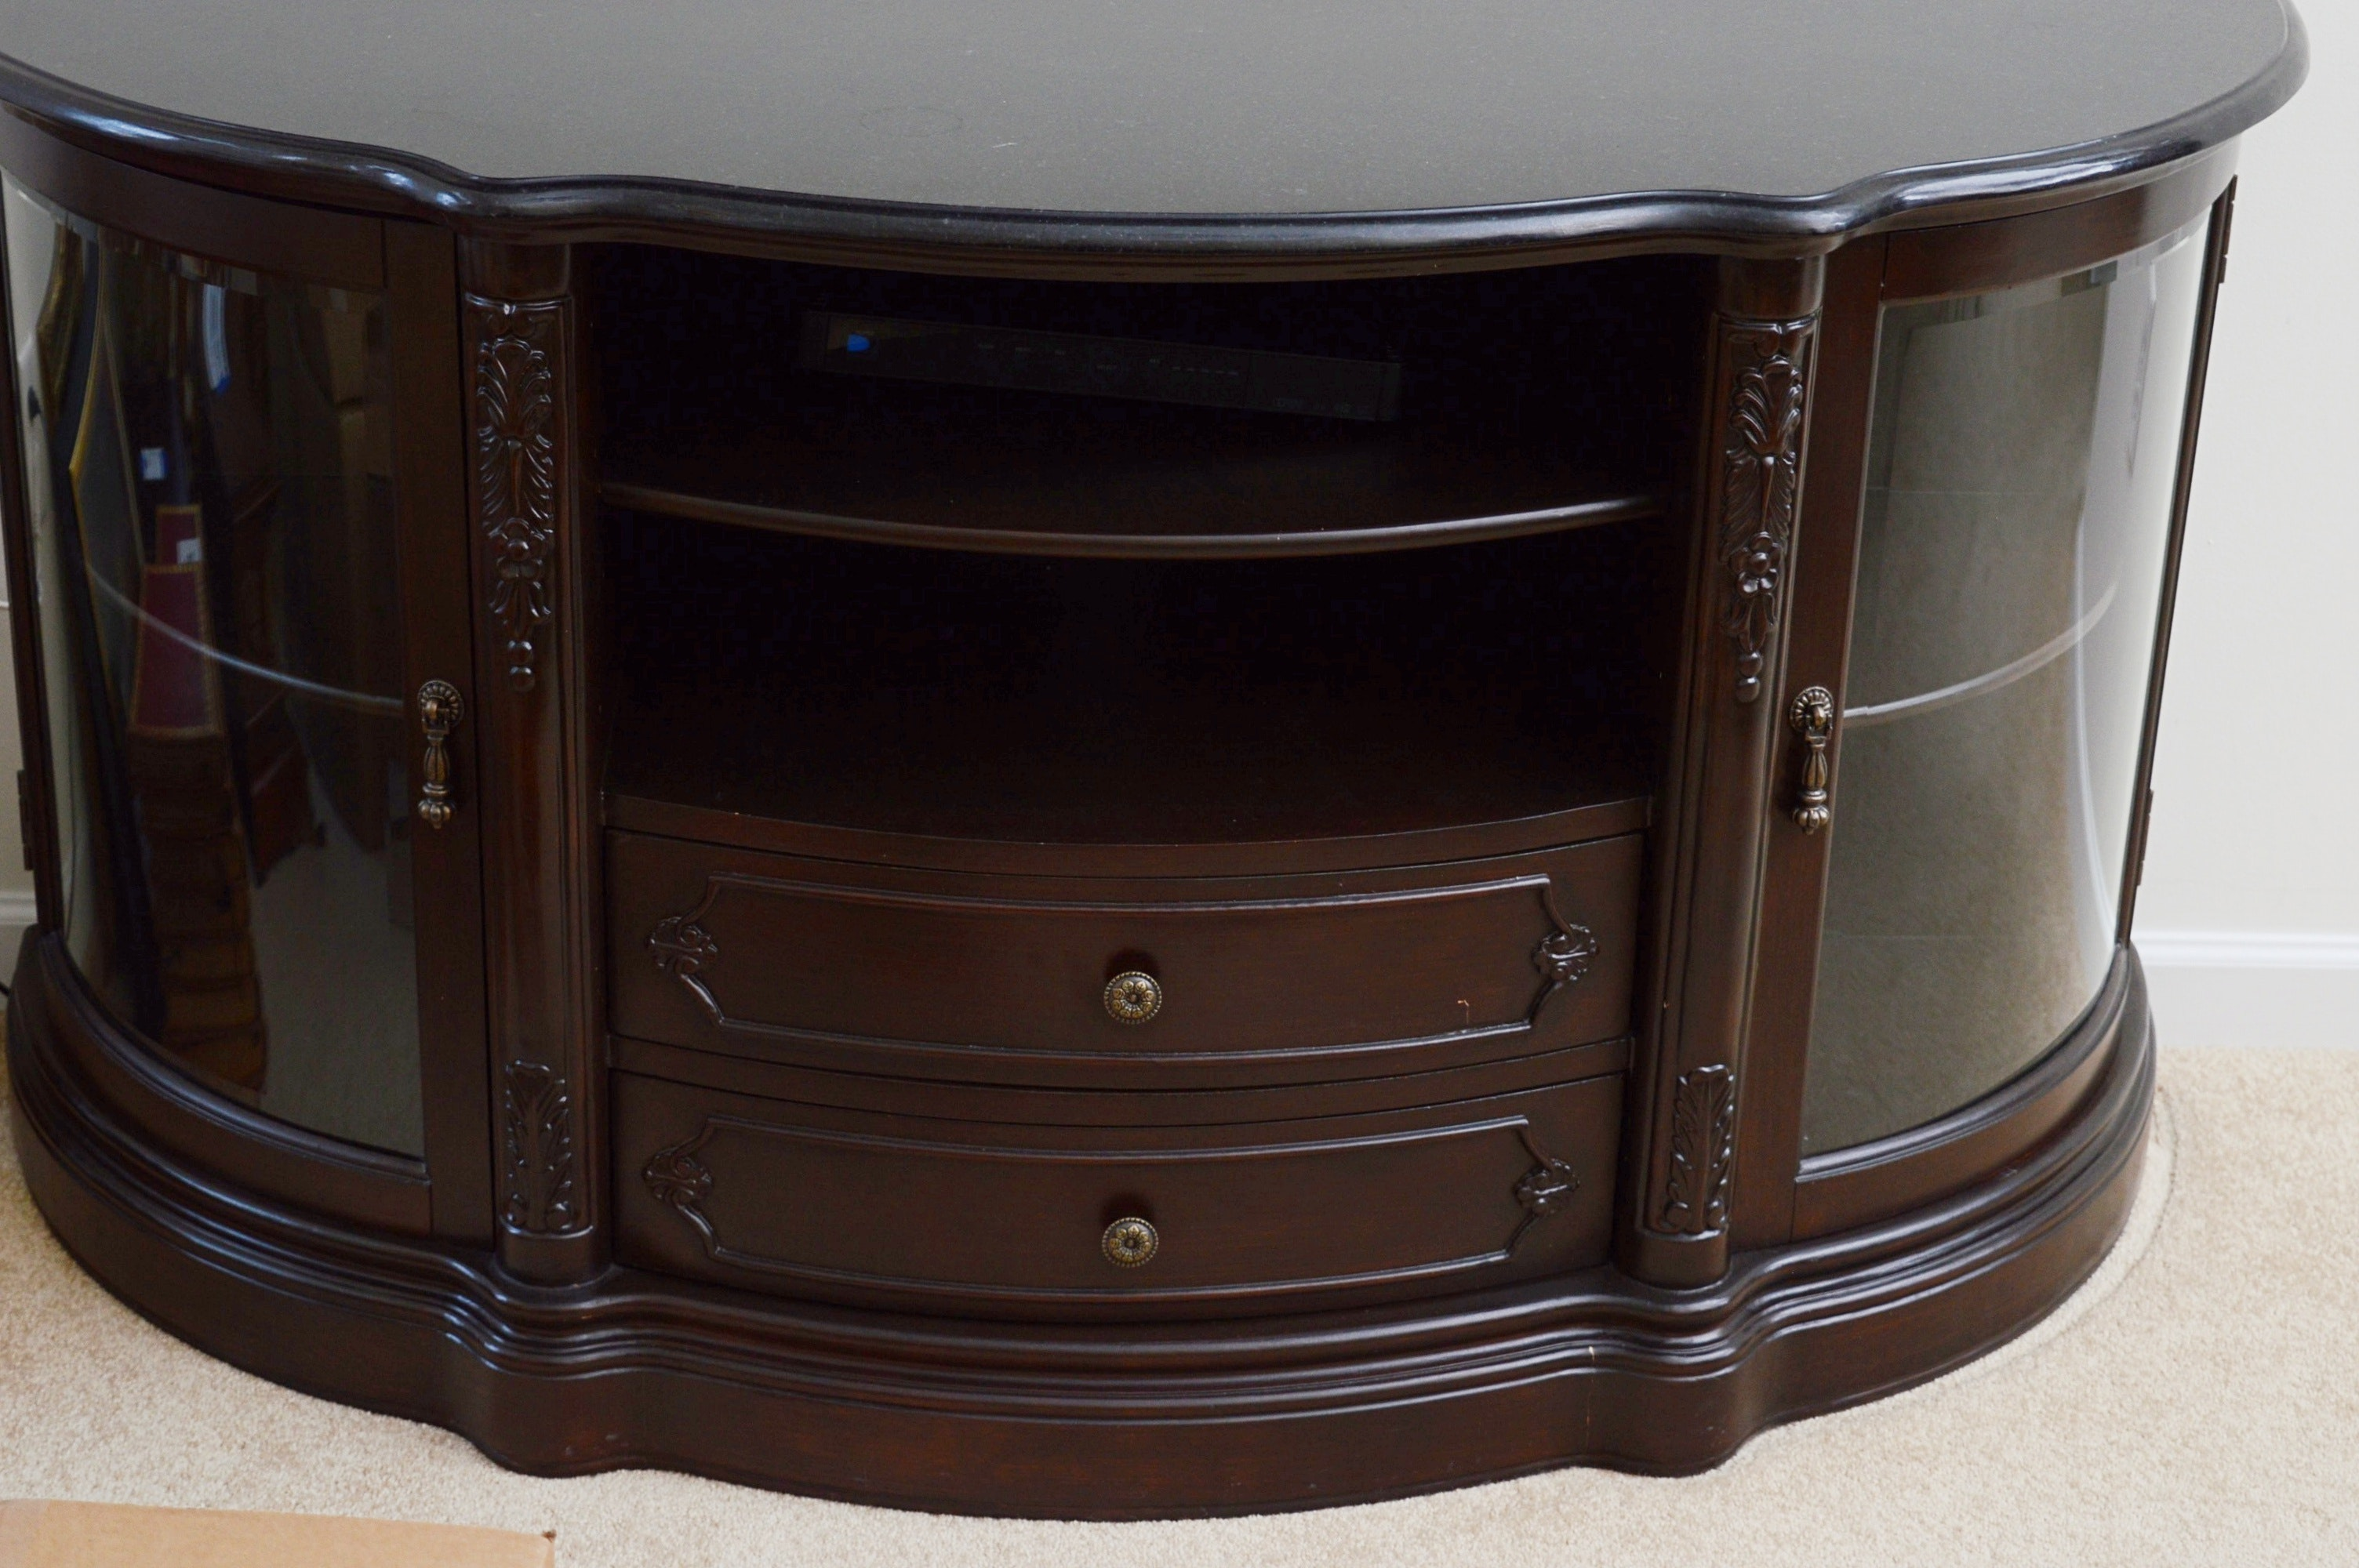 Granite Top Electronics and Television Unit